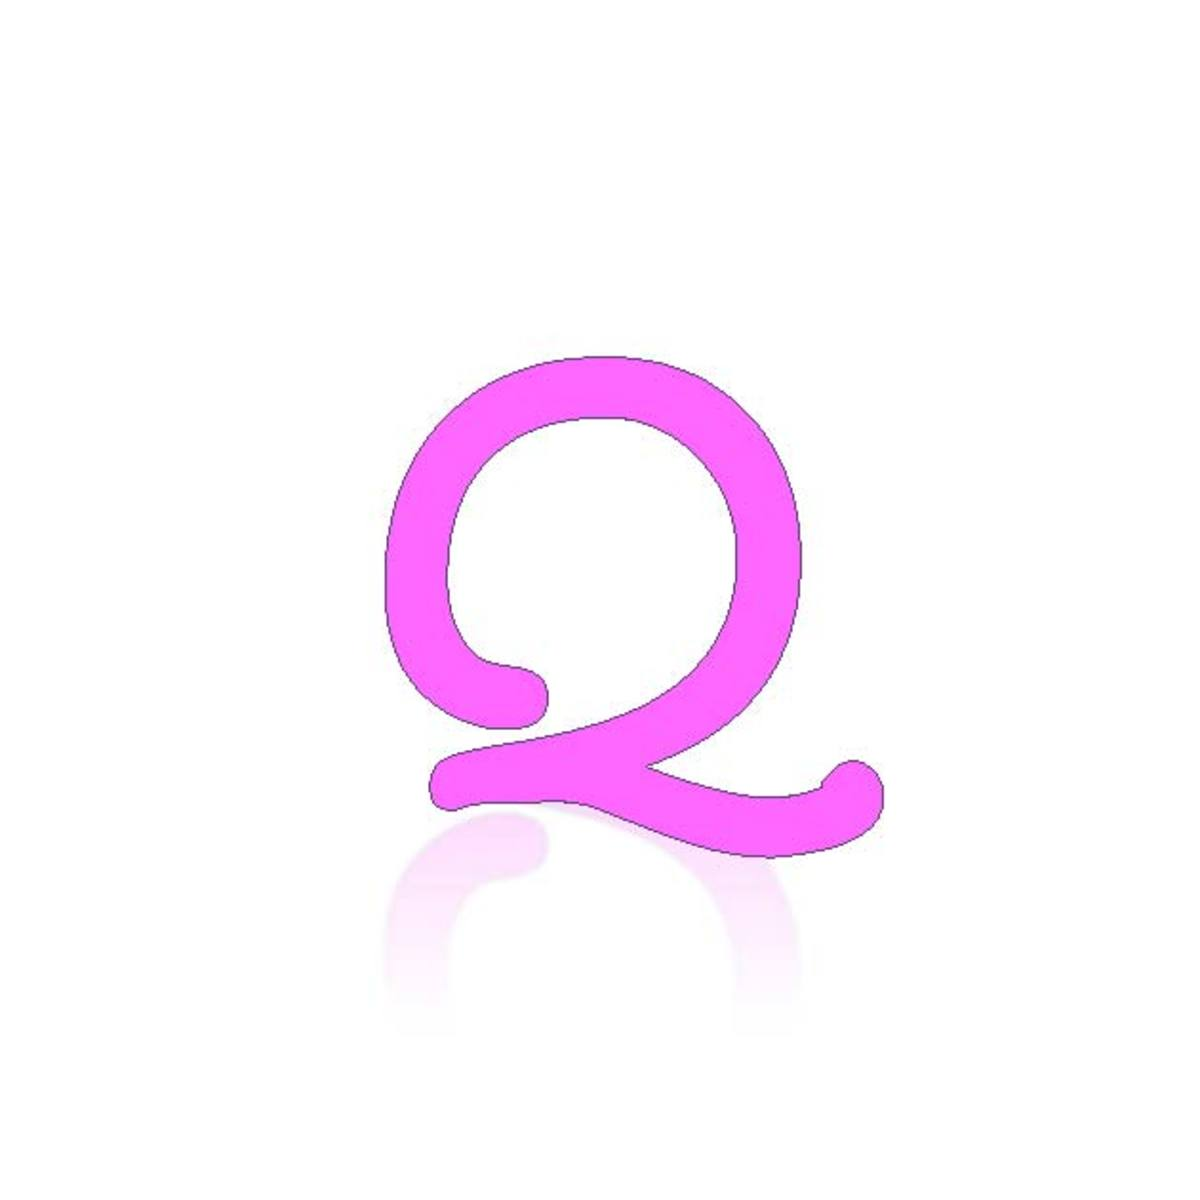 Acrostic Name Poems for Girls Names Starting with Q